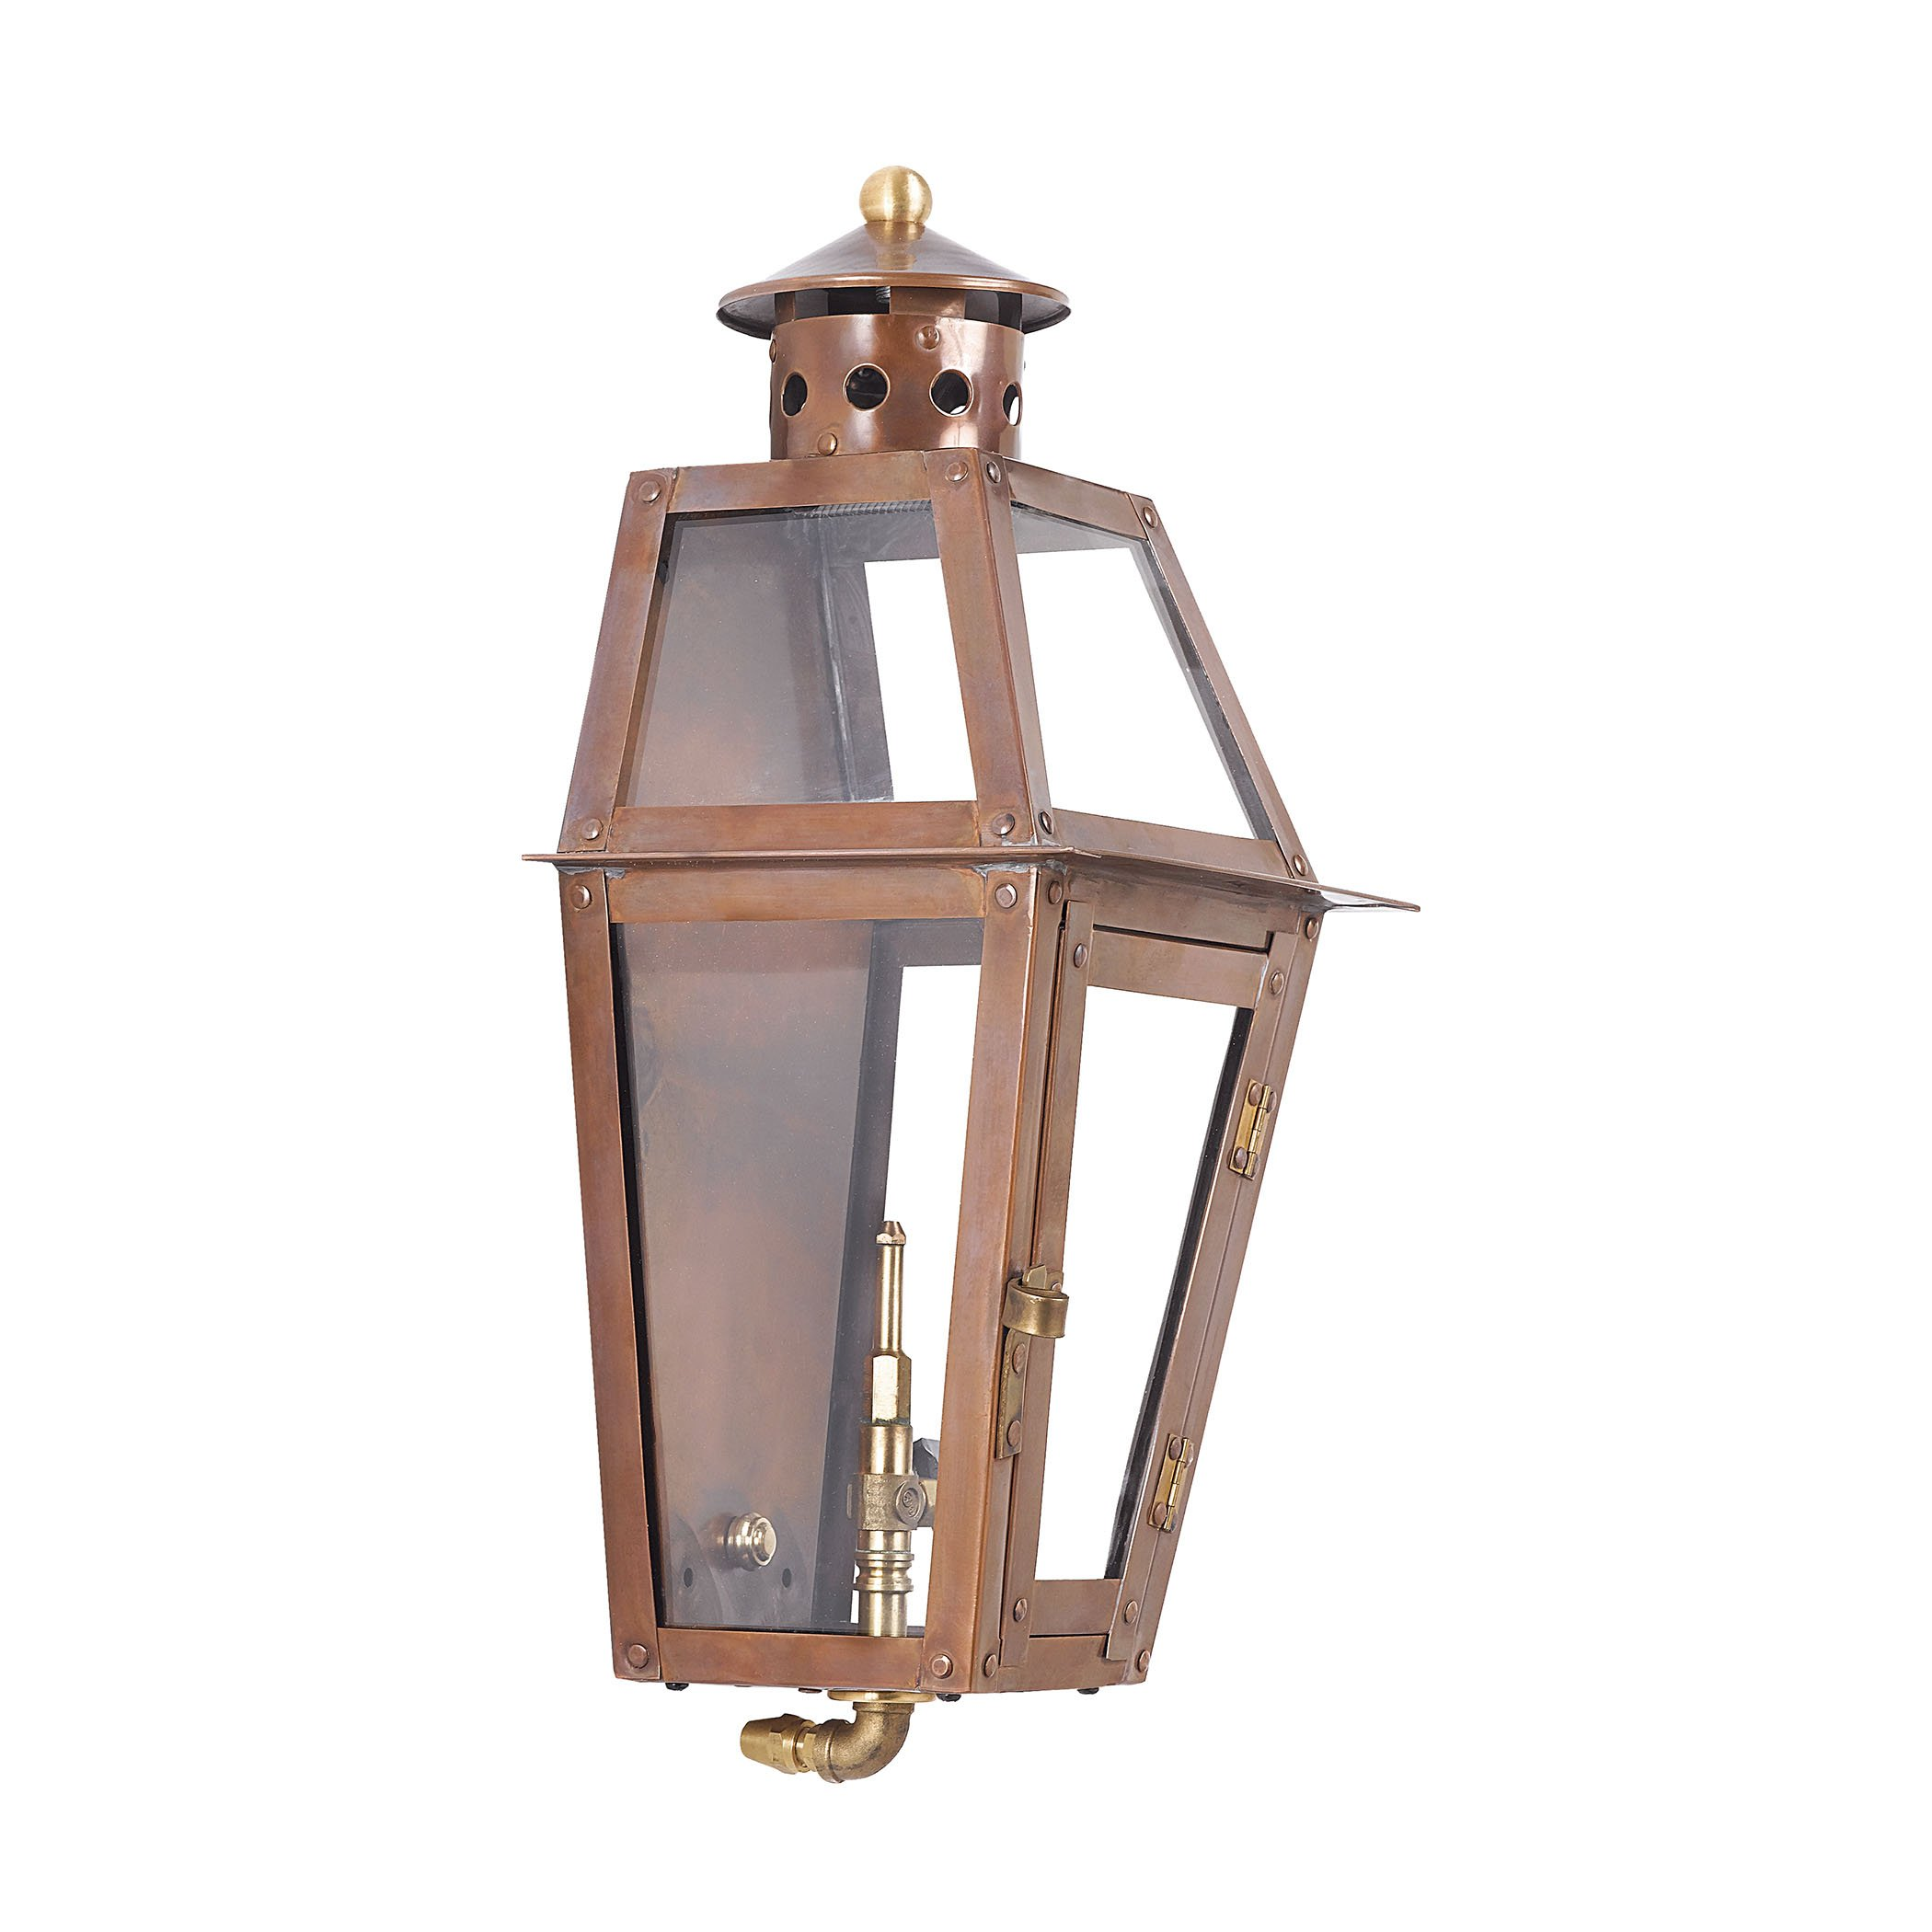 Elk Lighting Grande Isle Outdoor Gas Wall Lantern in Aged Copper by ELK Lighting